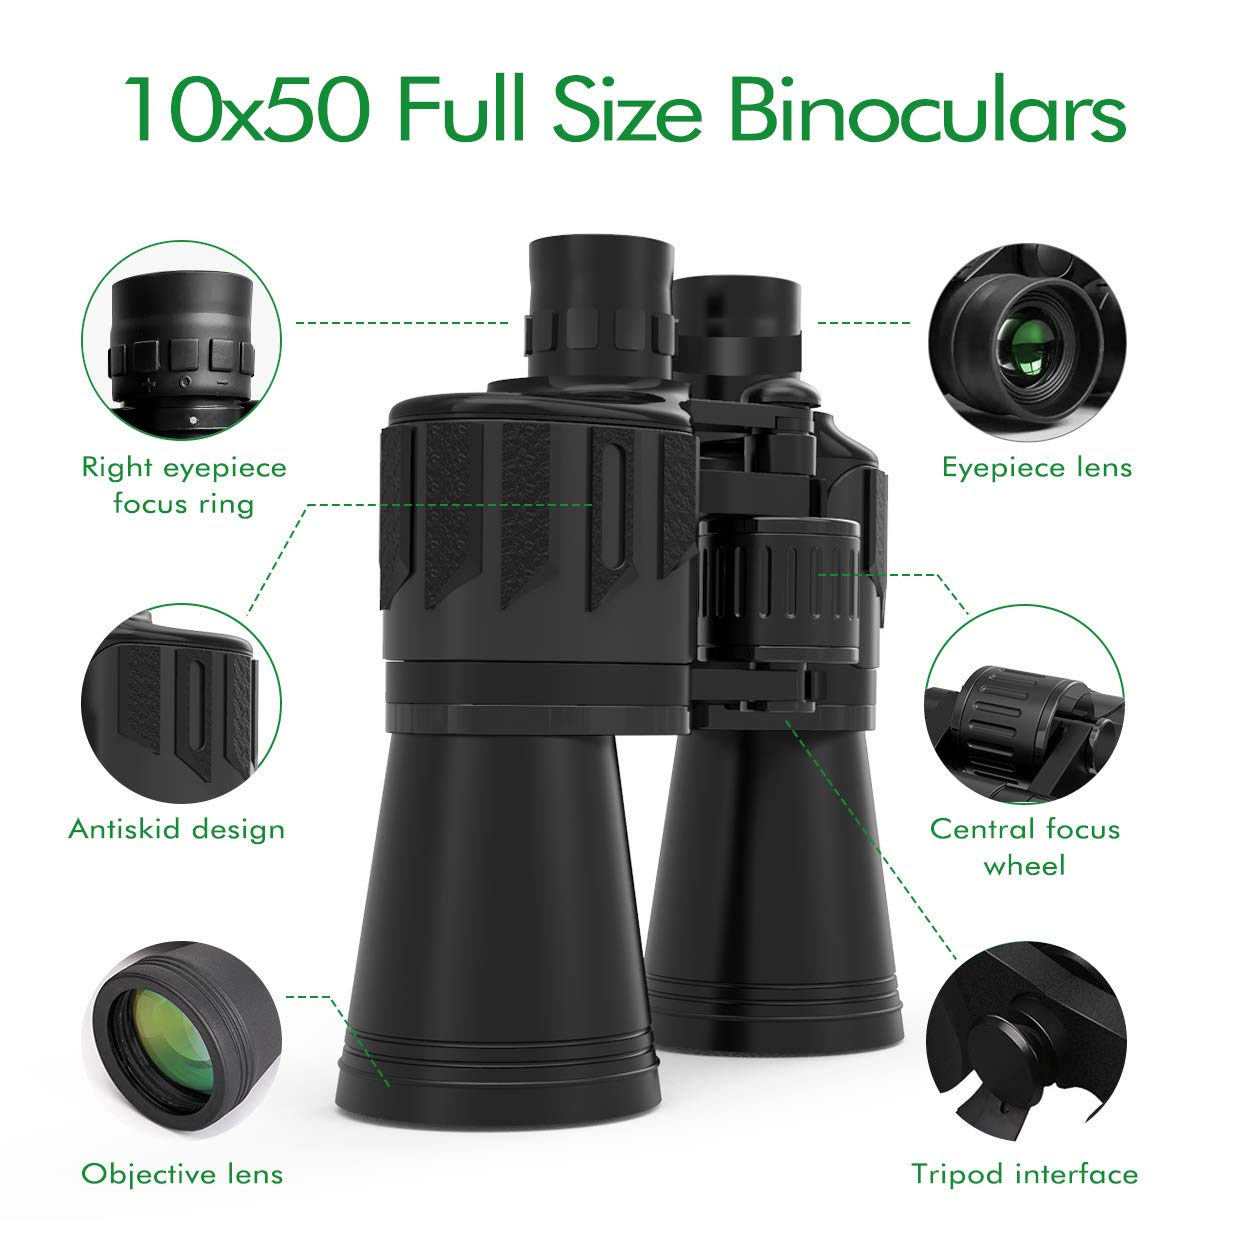 Binoculars for Adults, Sinohrd 10x50 Compact Powerful HD Binoculars for Bird Watching,Traveling,Hunting,Concerts,Sightseeing Telescope with Strap Carrying Bag & Phone Mount